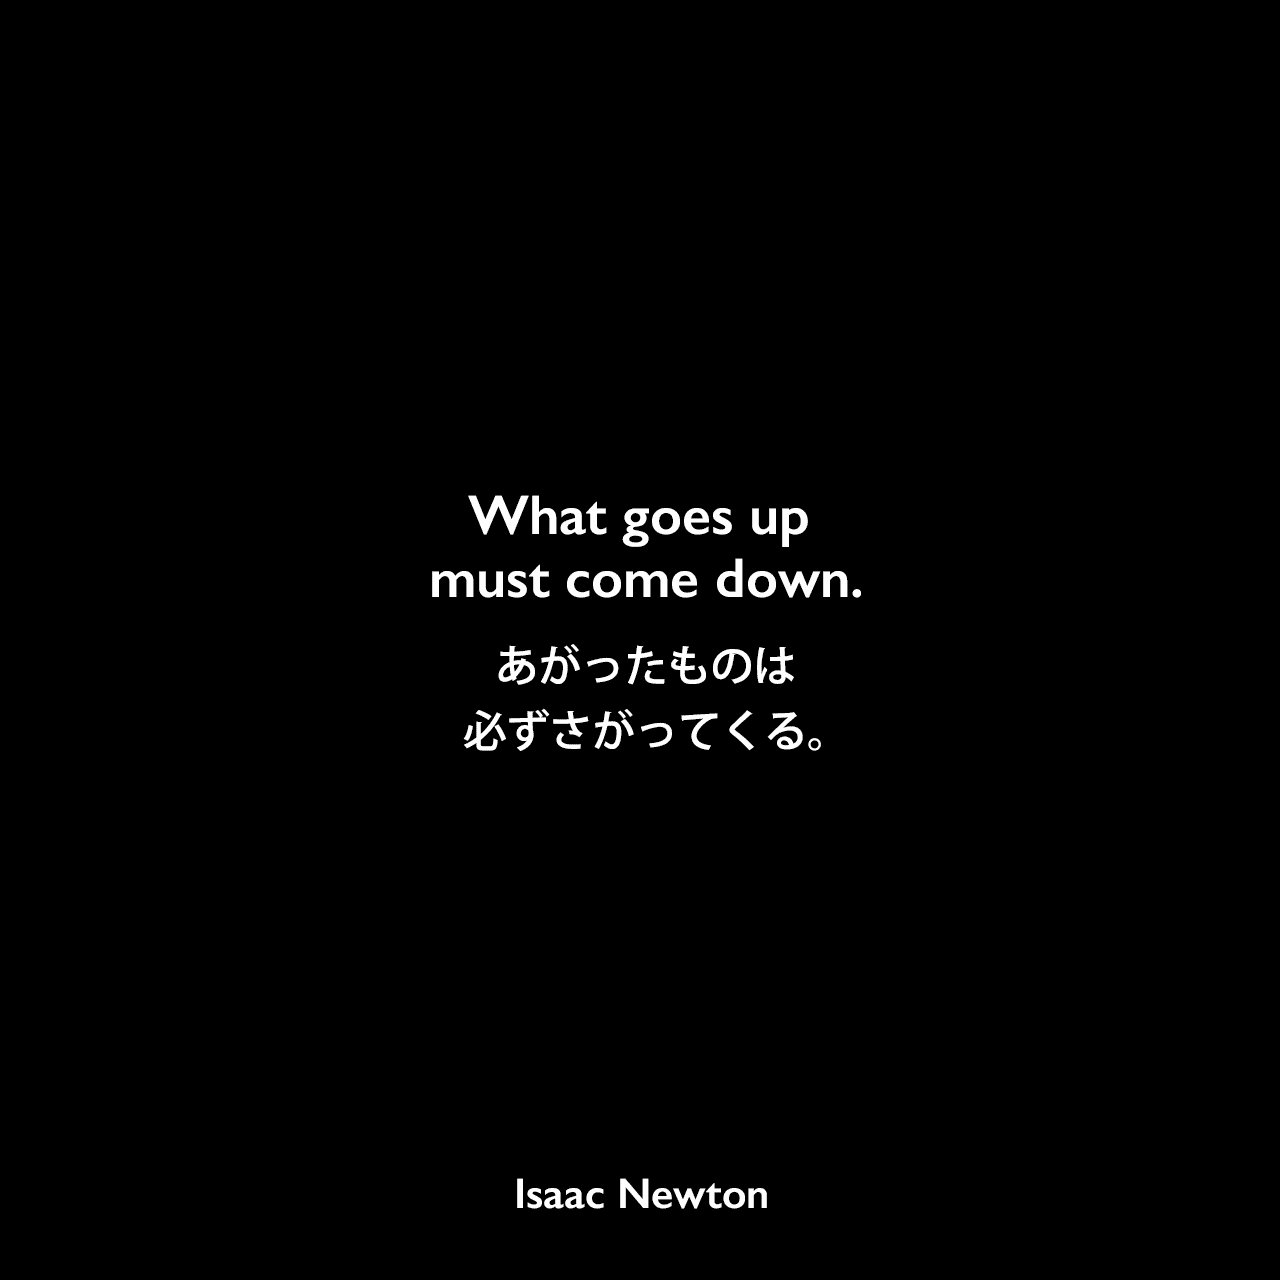 What goes up must come down.あがったものは必ずさがってくる。Isaac Newton